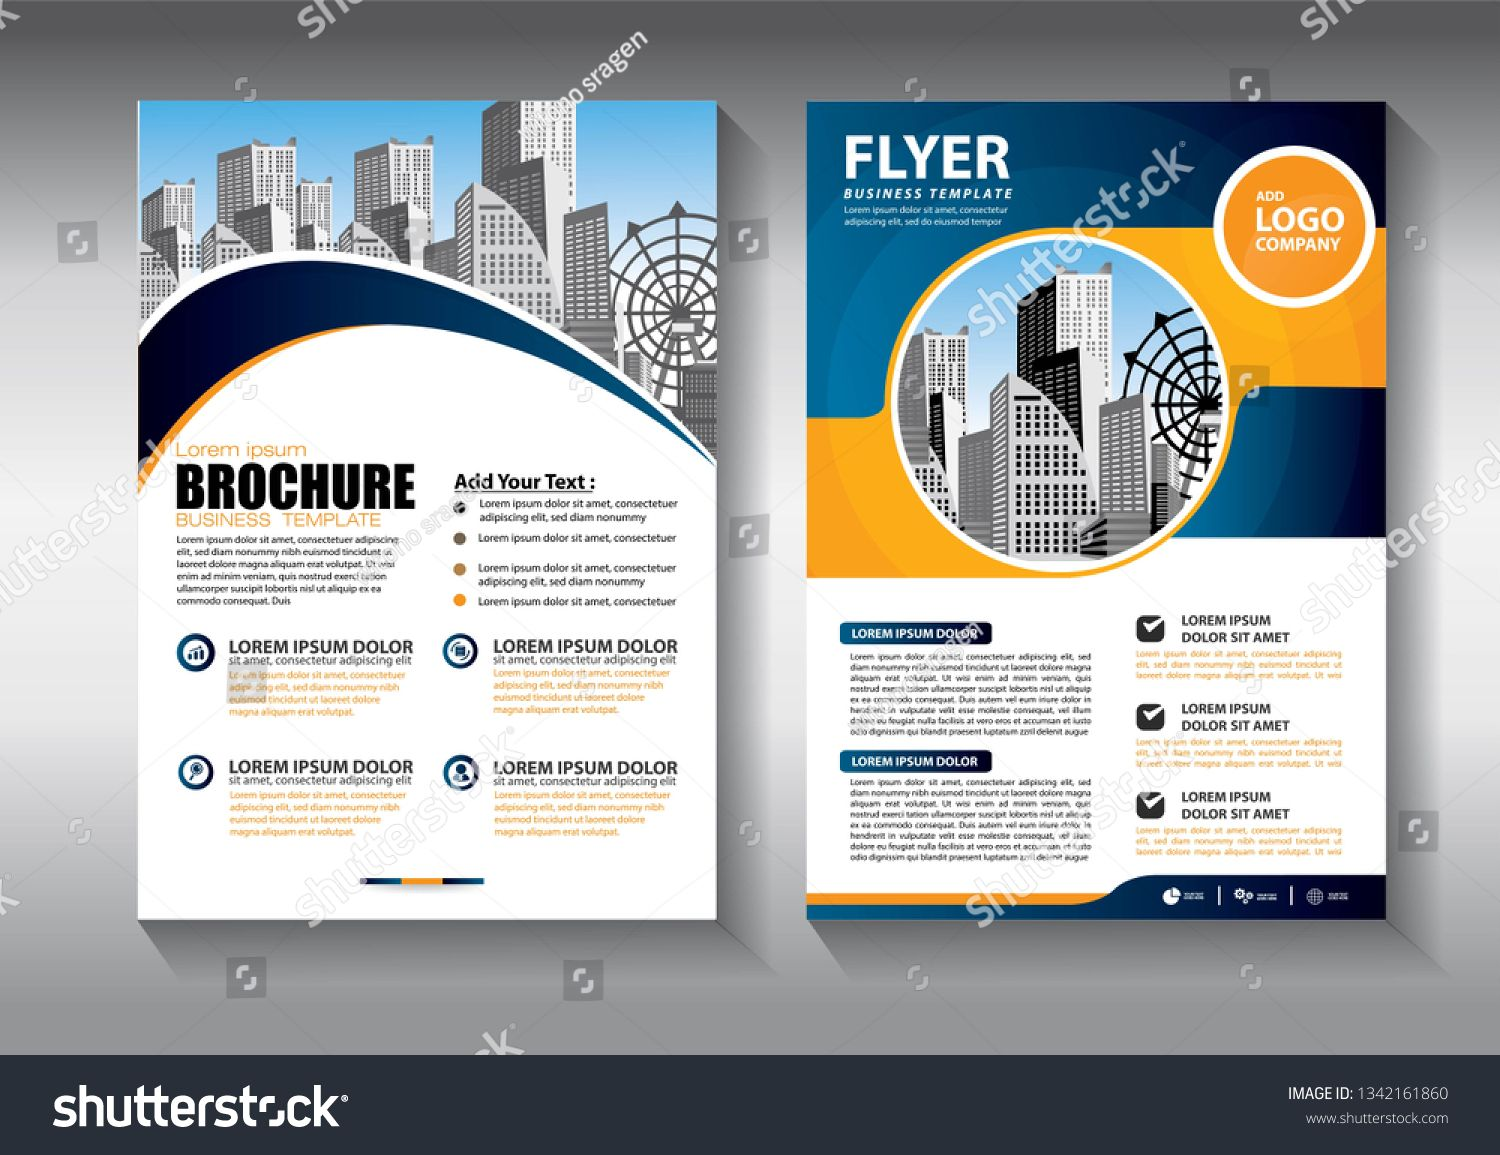 Business abstract vector template. Brochure design, cover